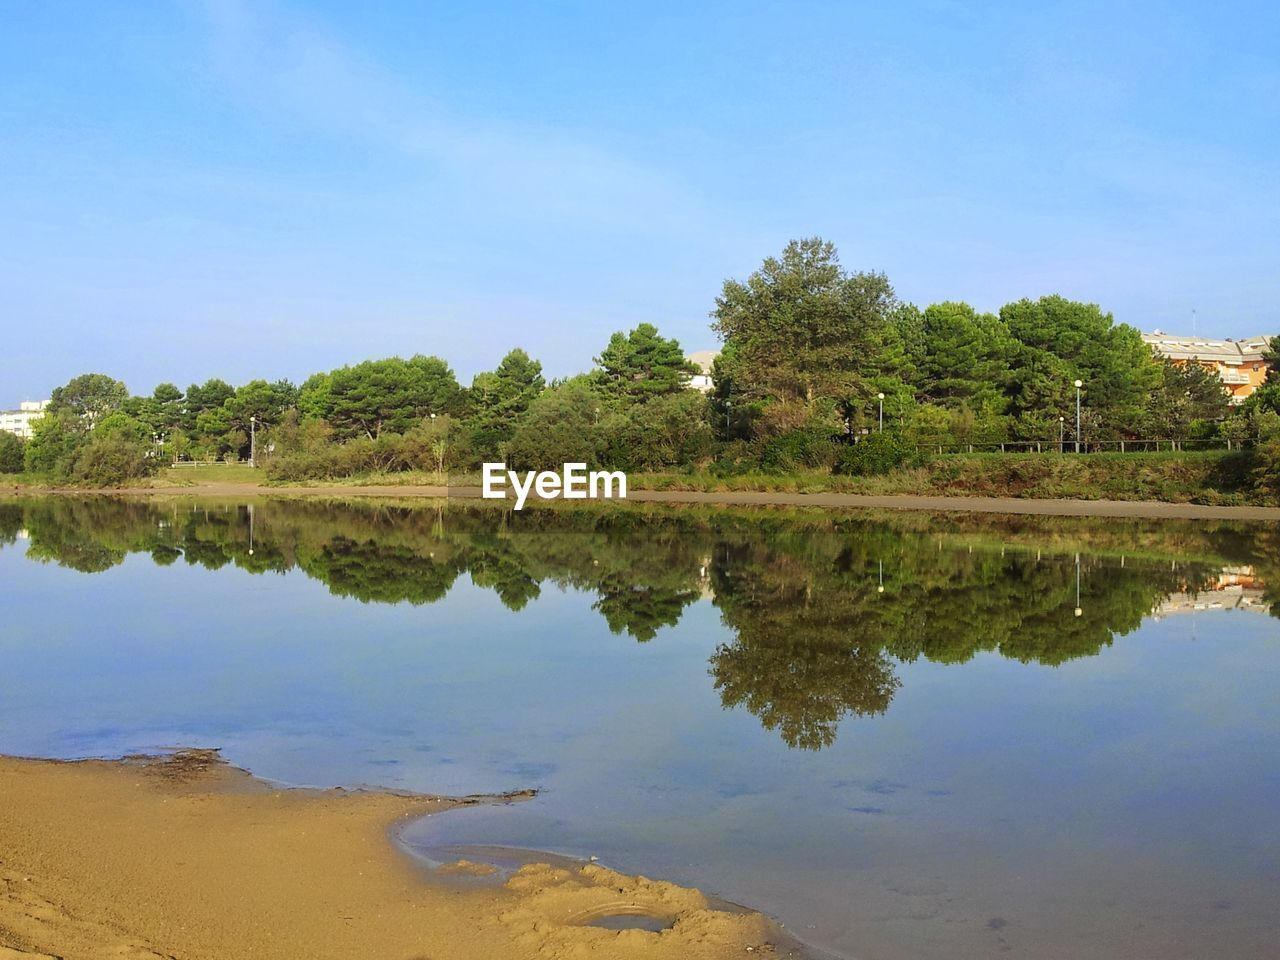 reflection, water, tree, nature, lake, sky, tranquil scene, outdoors, scenics, tranquility, no people, blue, beauty in nature, day